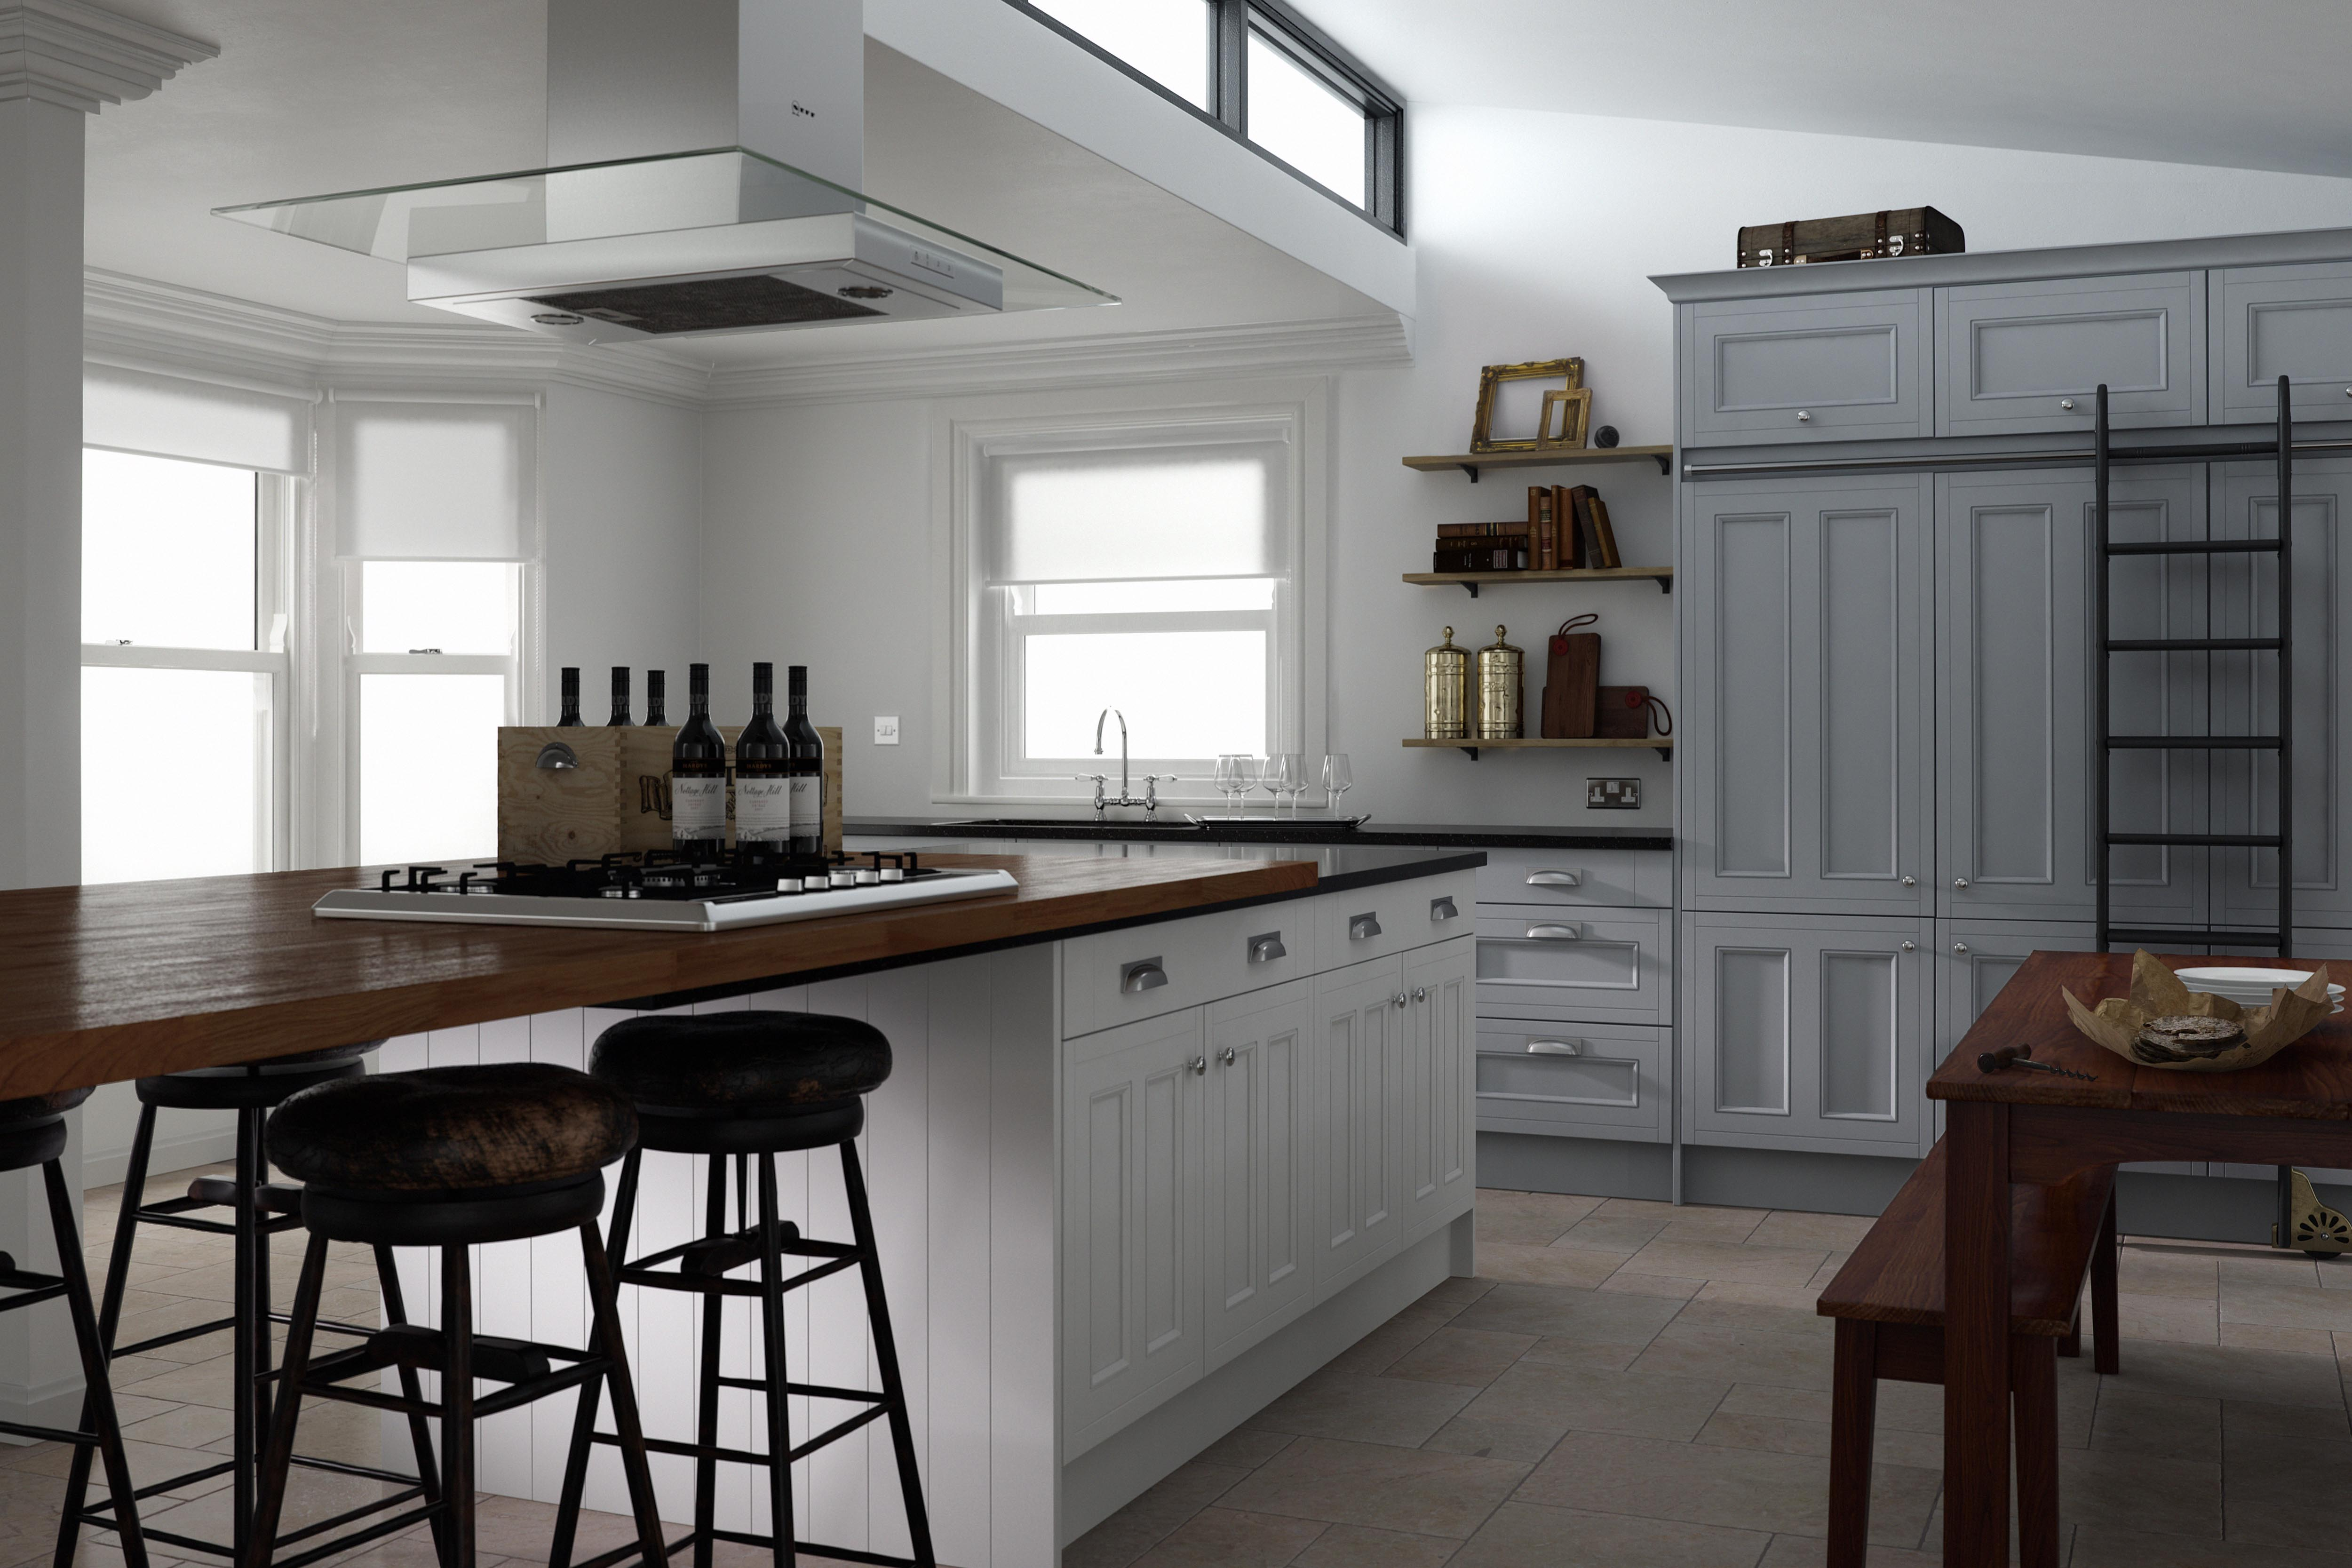 50 shades of grey sultry kitchen design wren kitchens blog for Grey country kitchen